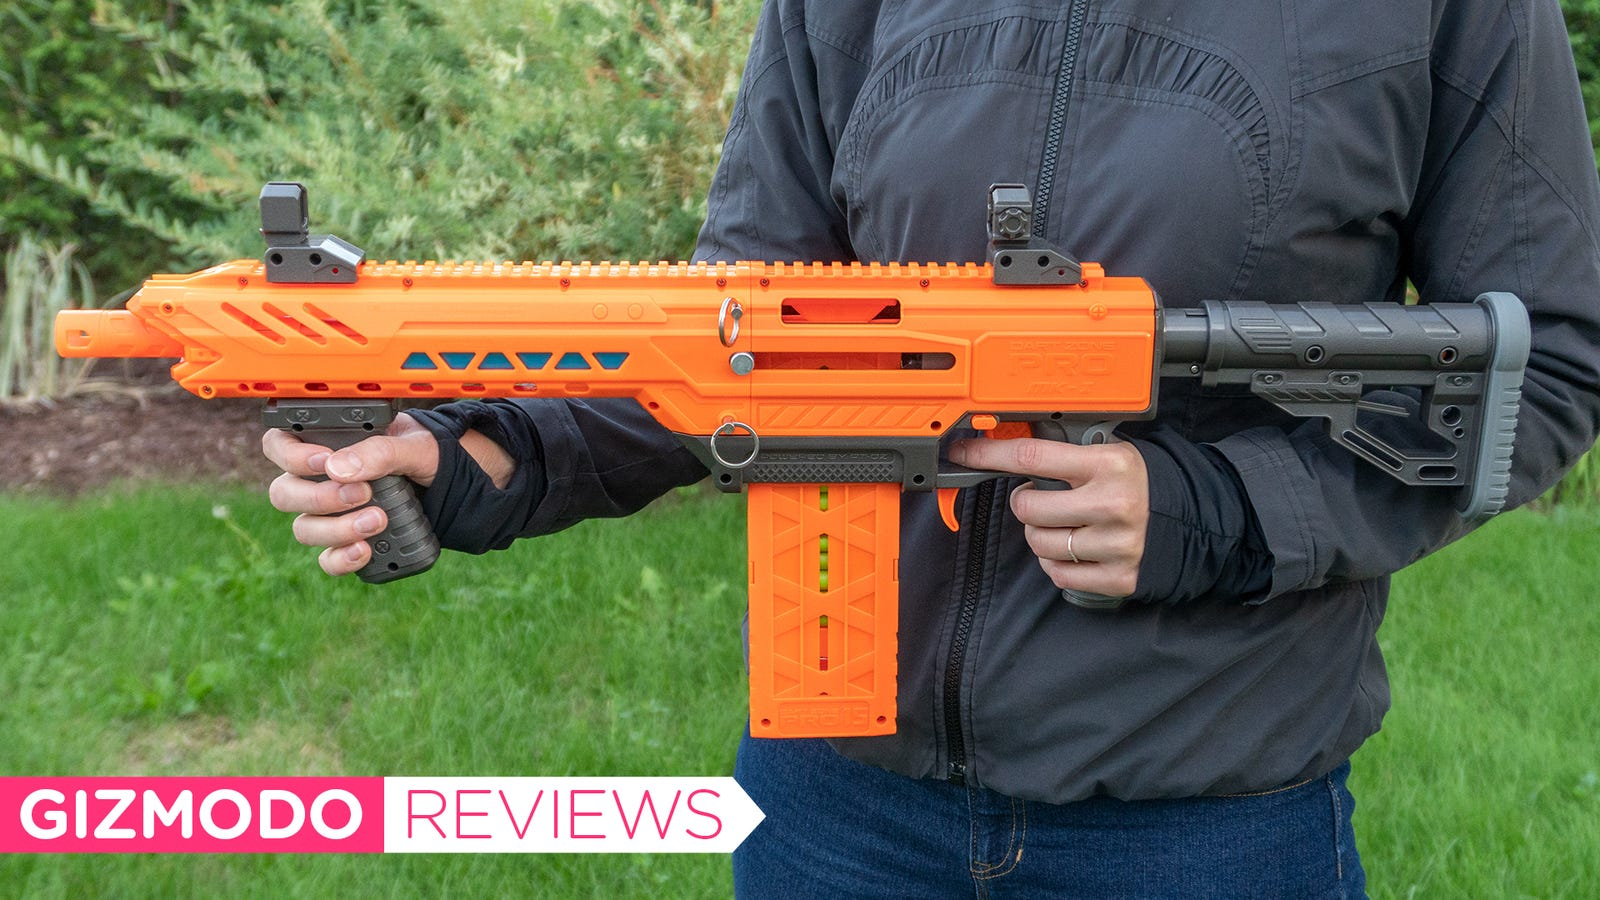 This $180 Dart Blaster Is More Powerful Than Anything Nerf's Ever Made